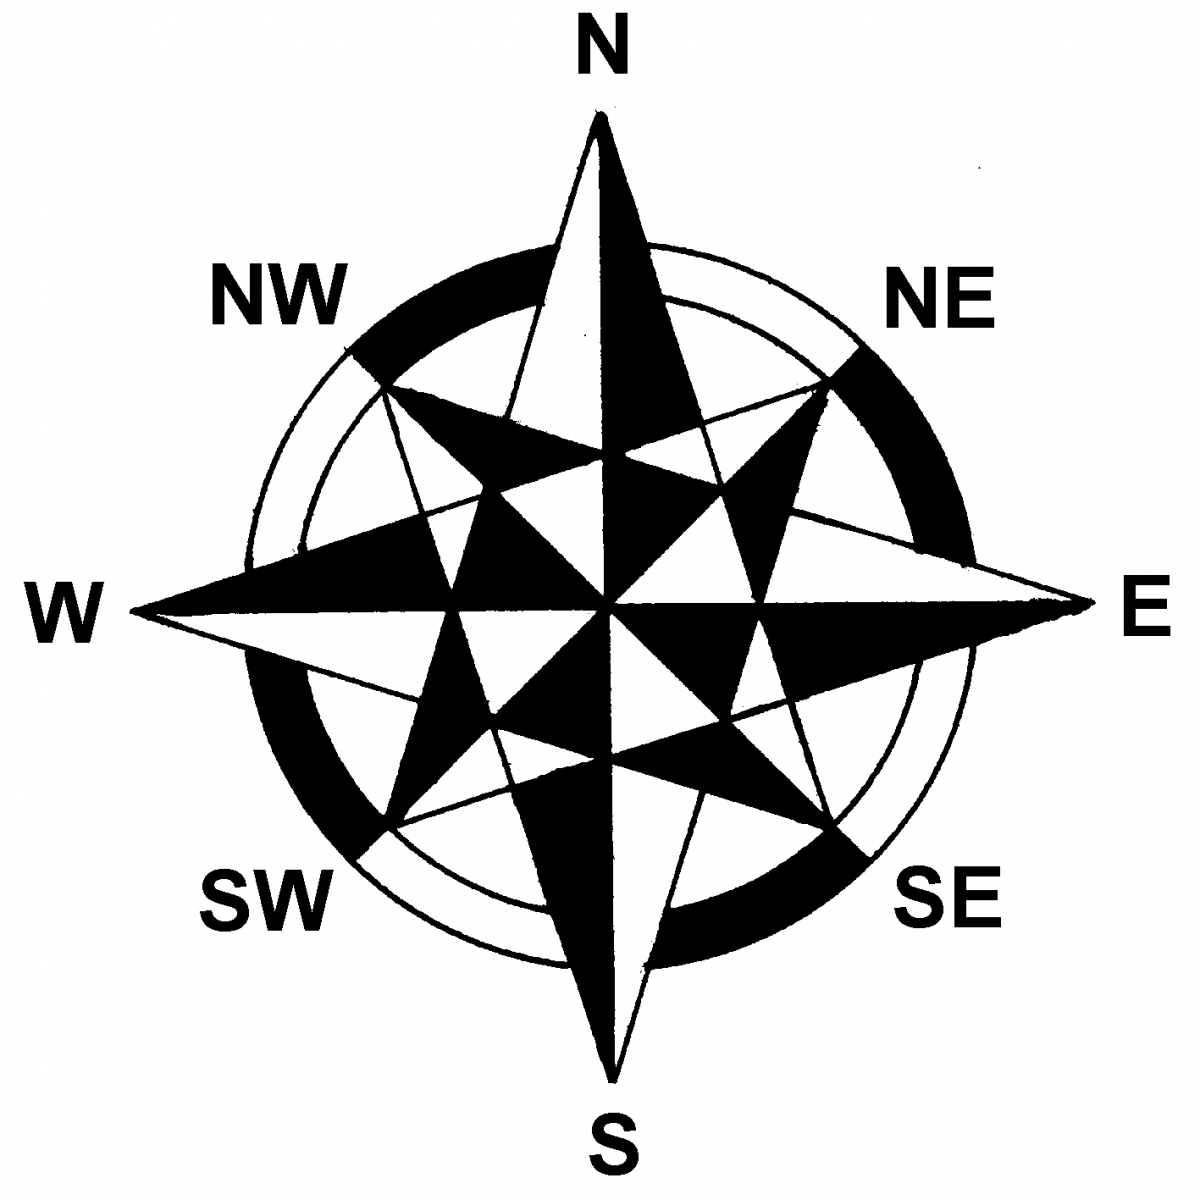 I M Going To The Basic Map Compass Class Compass Map Compass Compass Directions